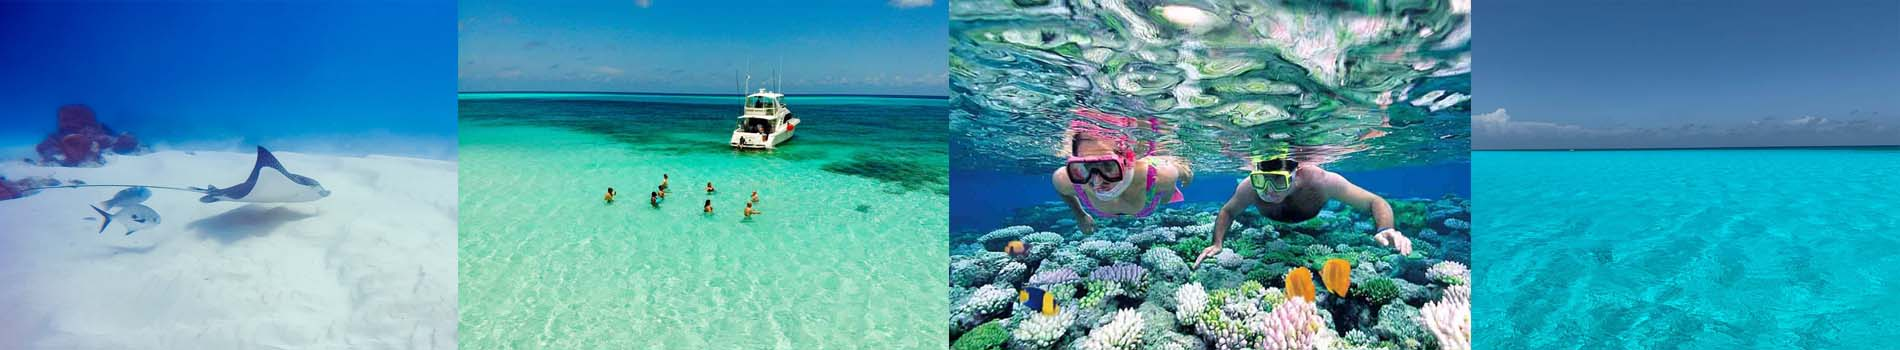 cozumel tour from cancun